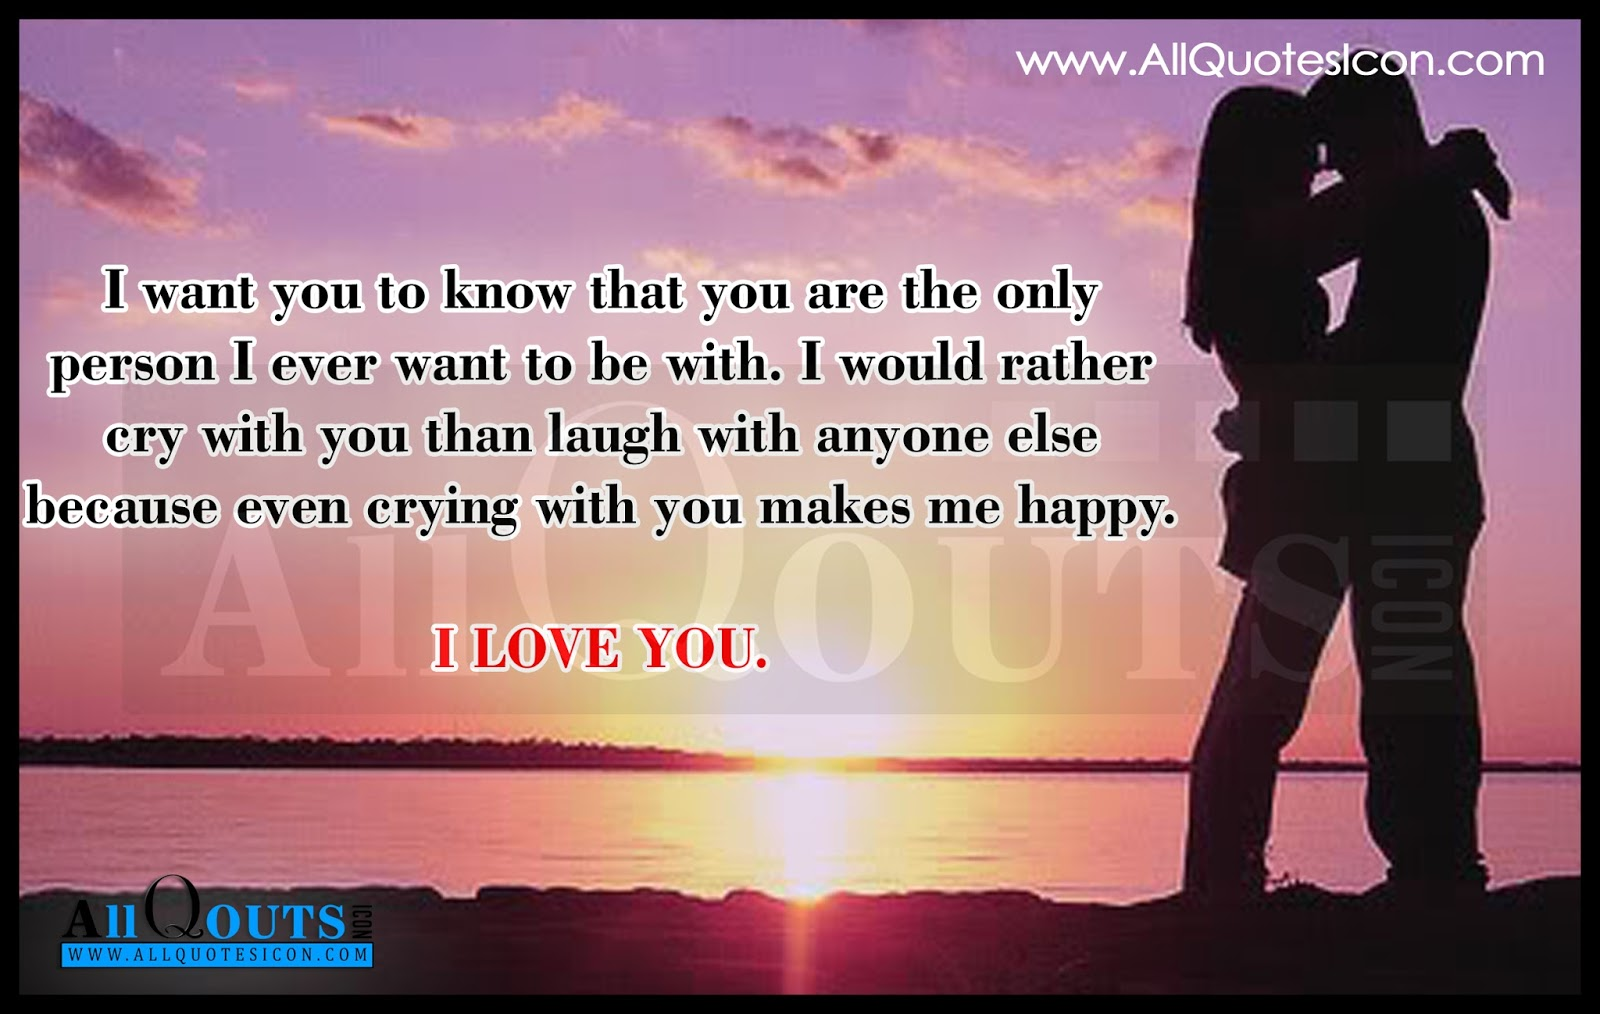 Love Quotes Wallpaper In English : You Makes me Happy Images Best Love Quotes Pictures for Her English Quotes Wallpapers www ...